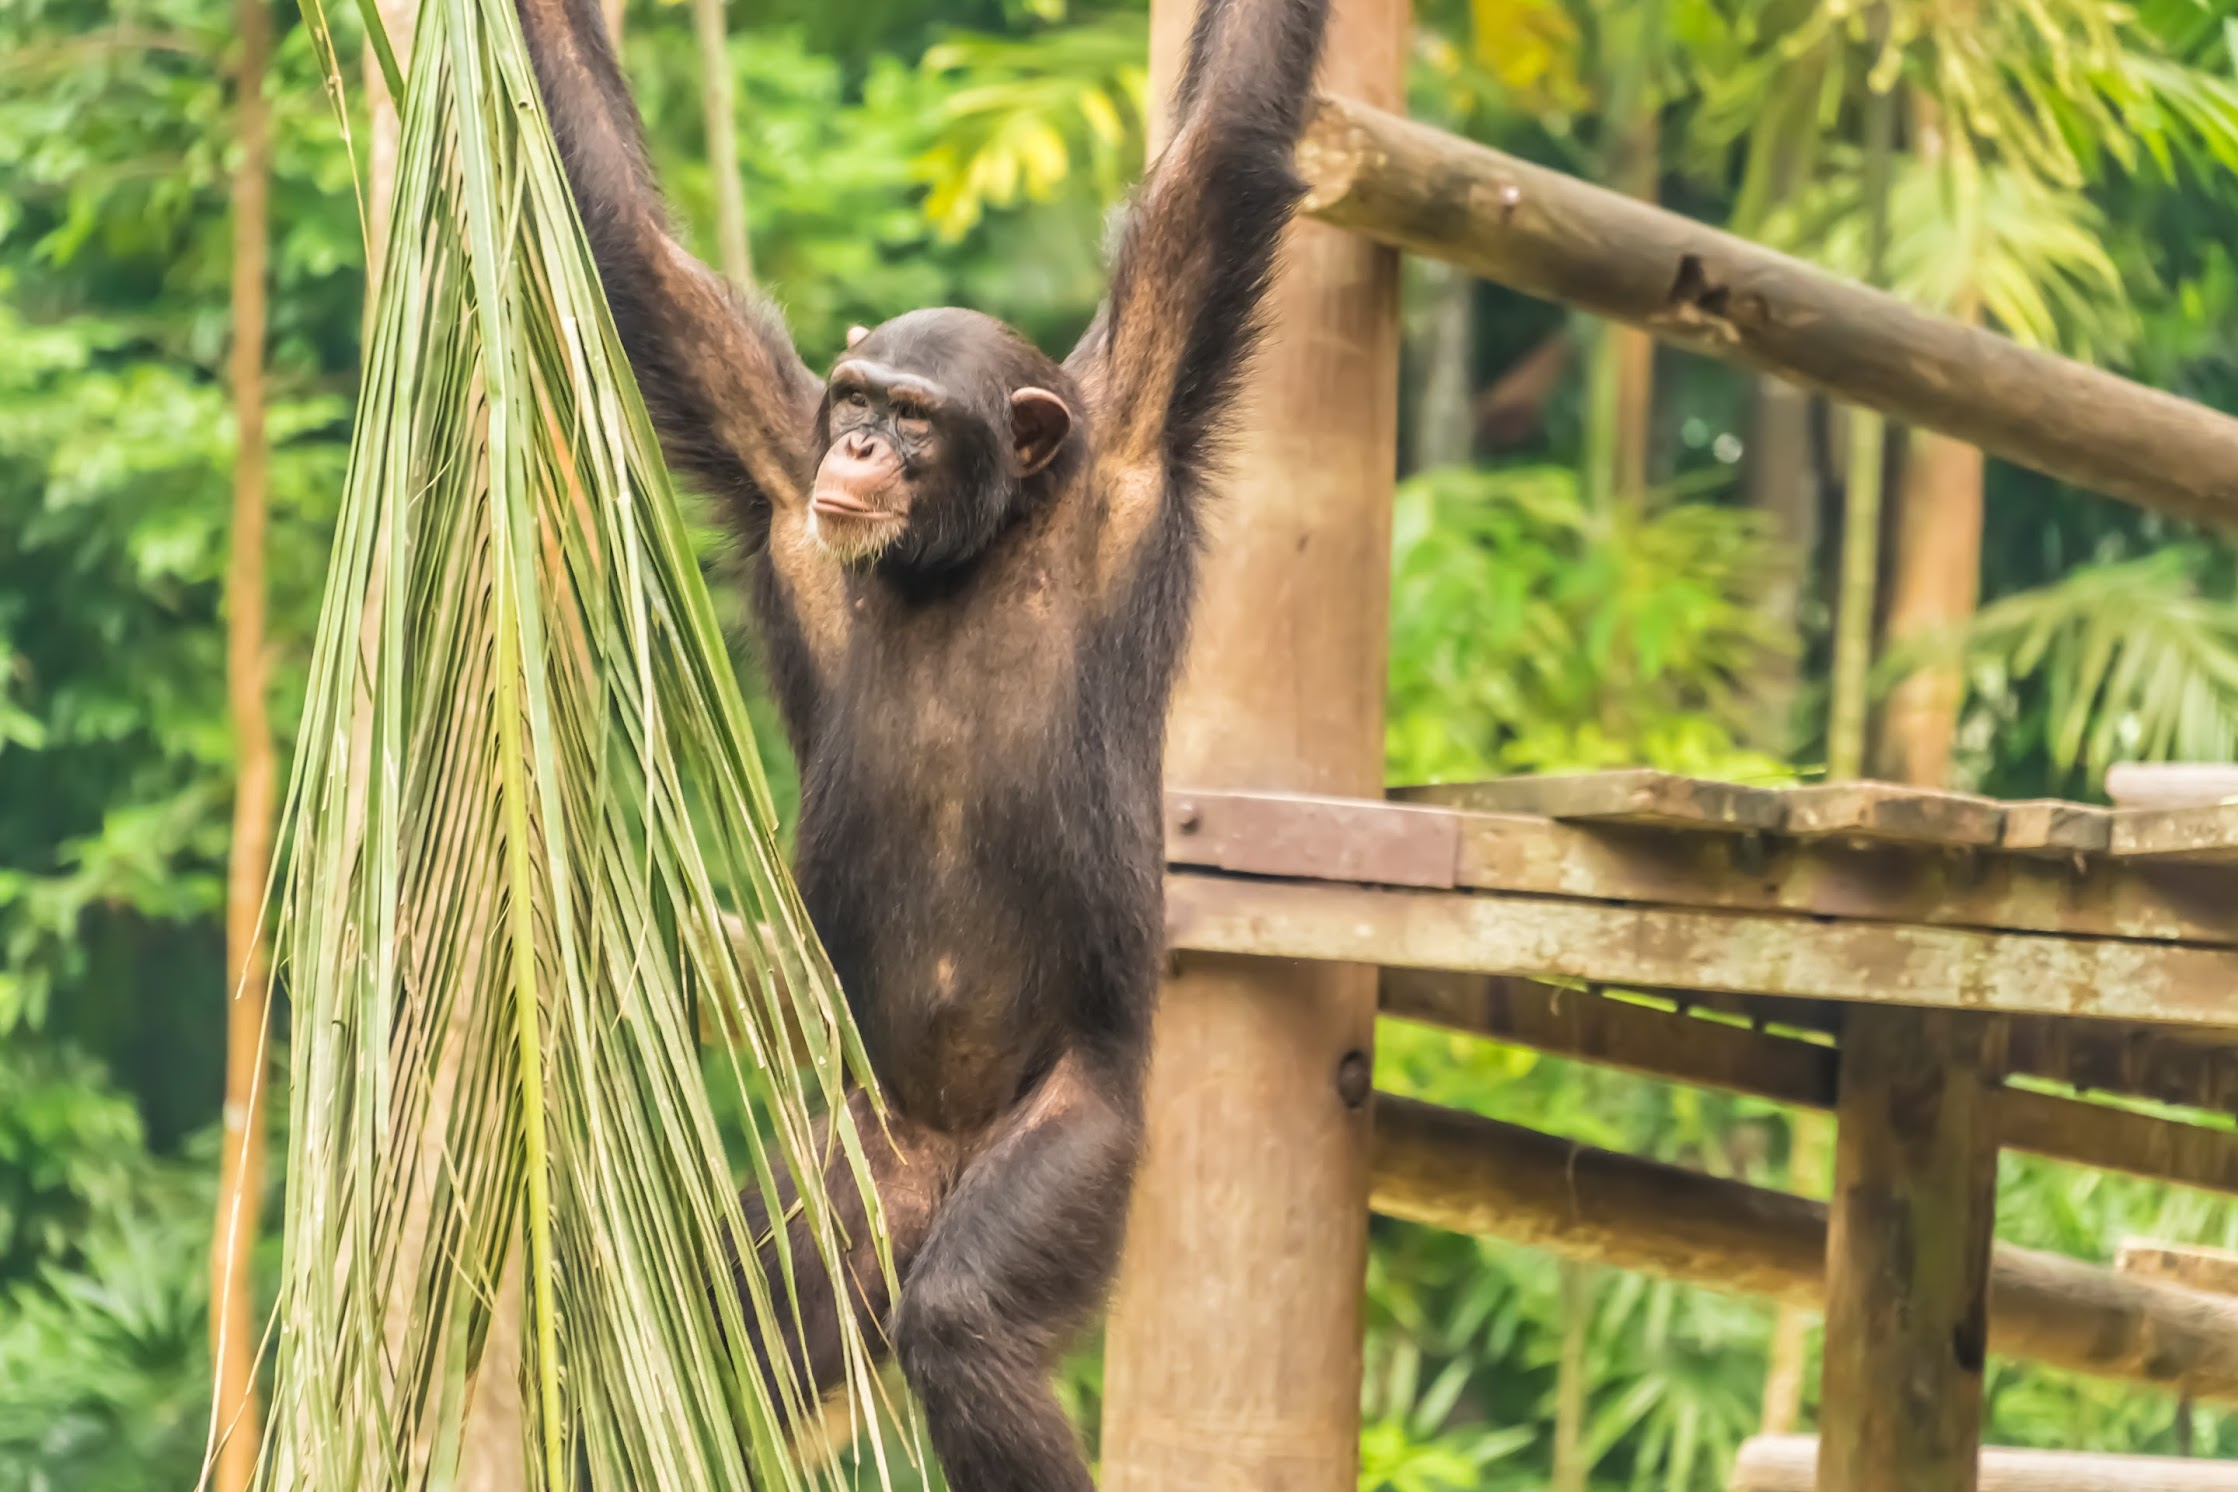 Singapore Zoo Chimpanzee2